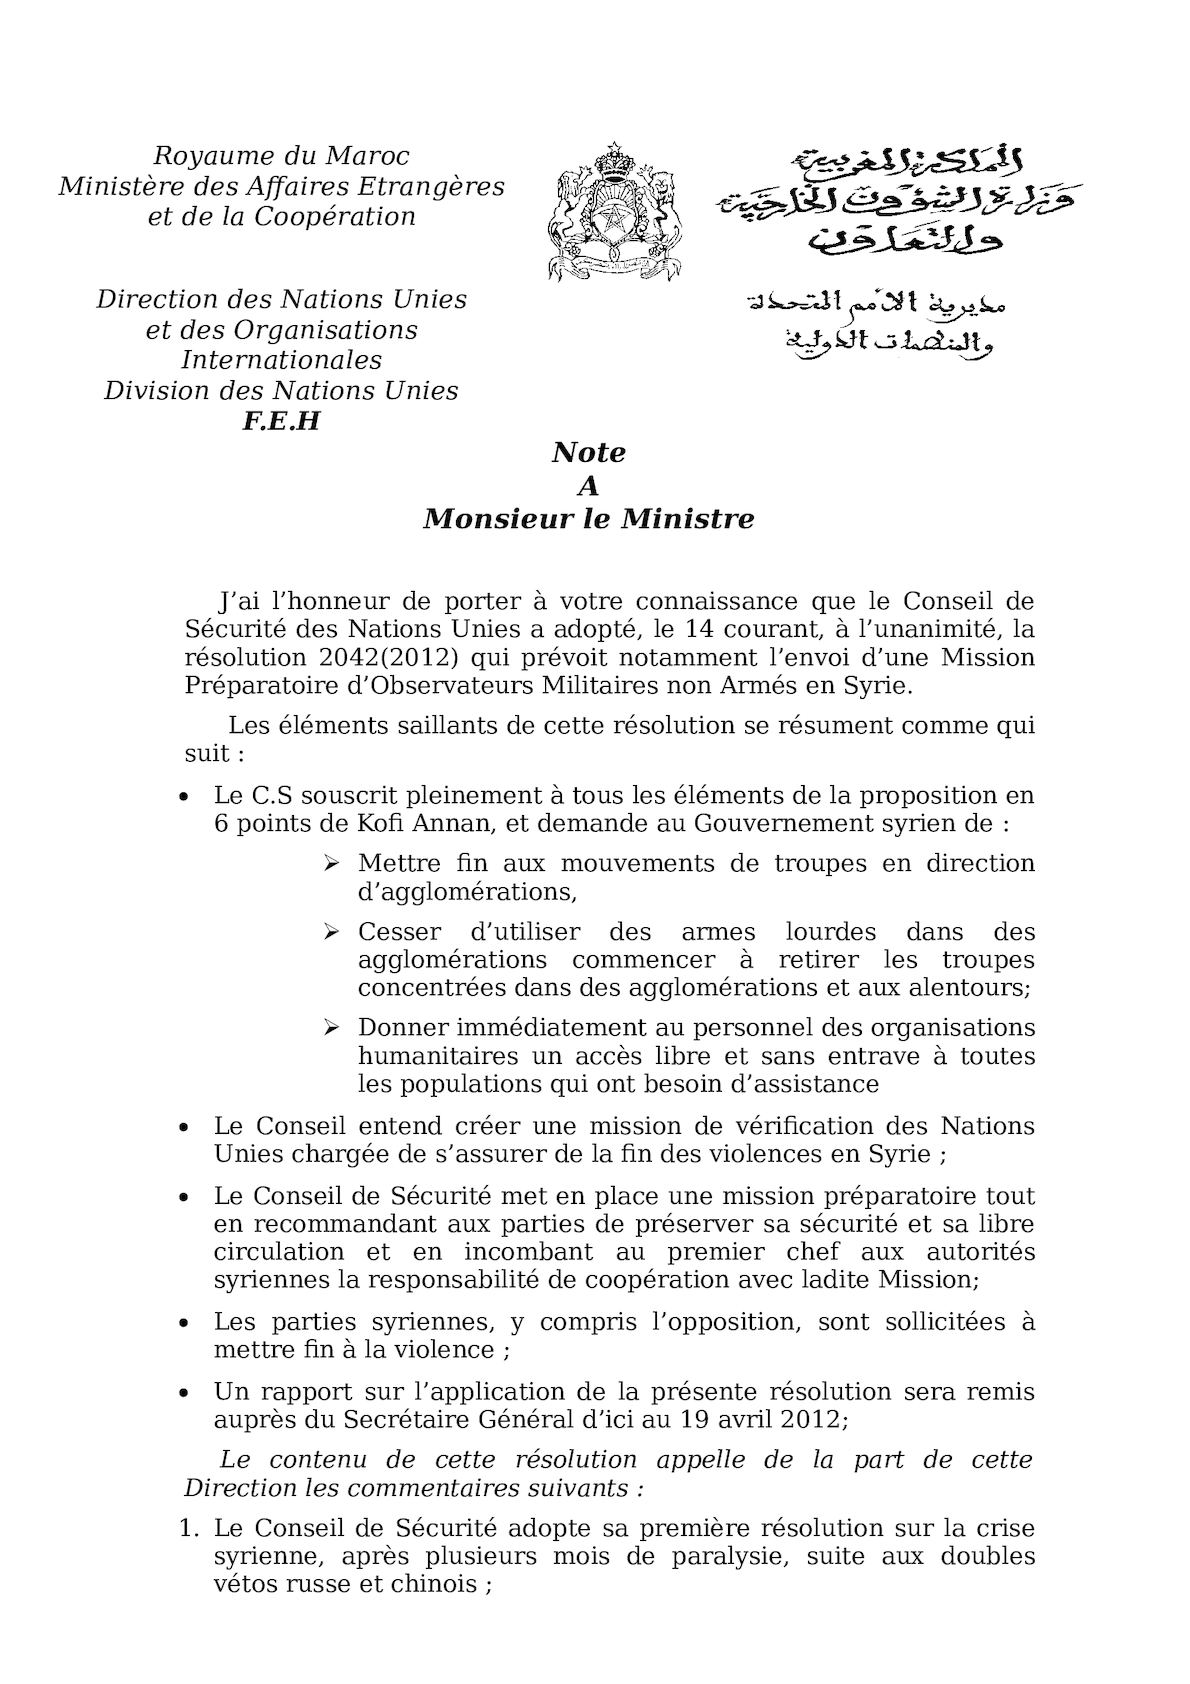 Note Syrie Avril 2012